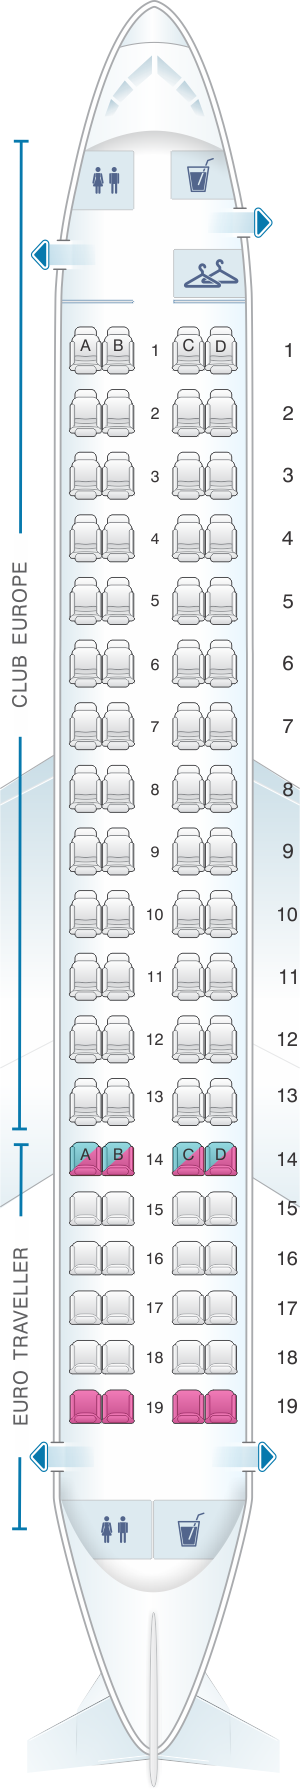 Seat map for British Airways Embraer 170 European